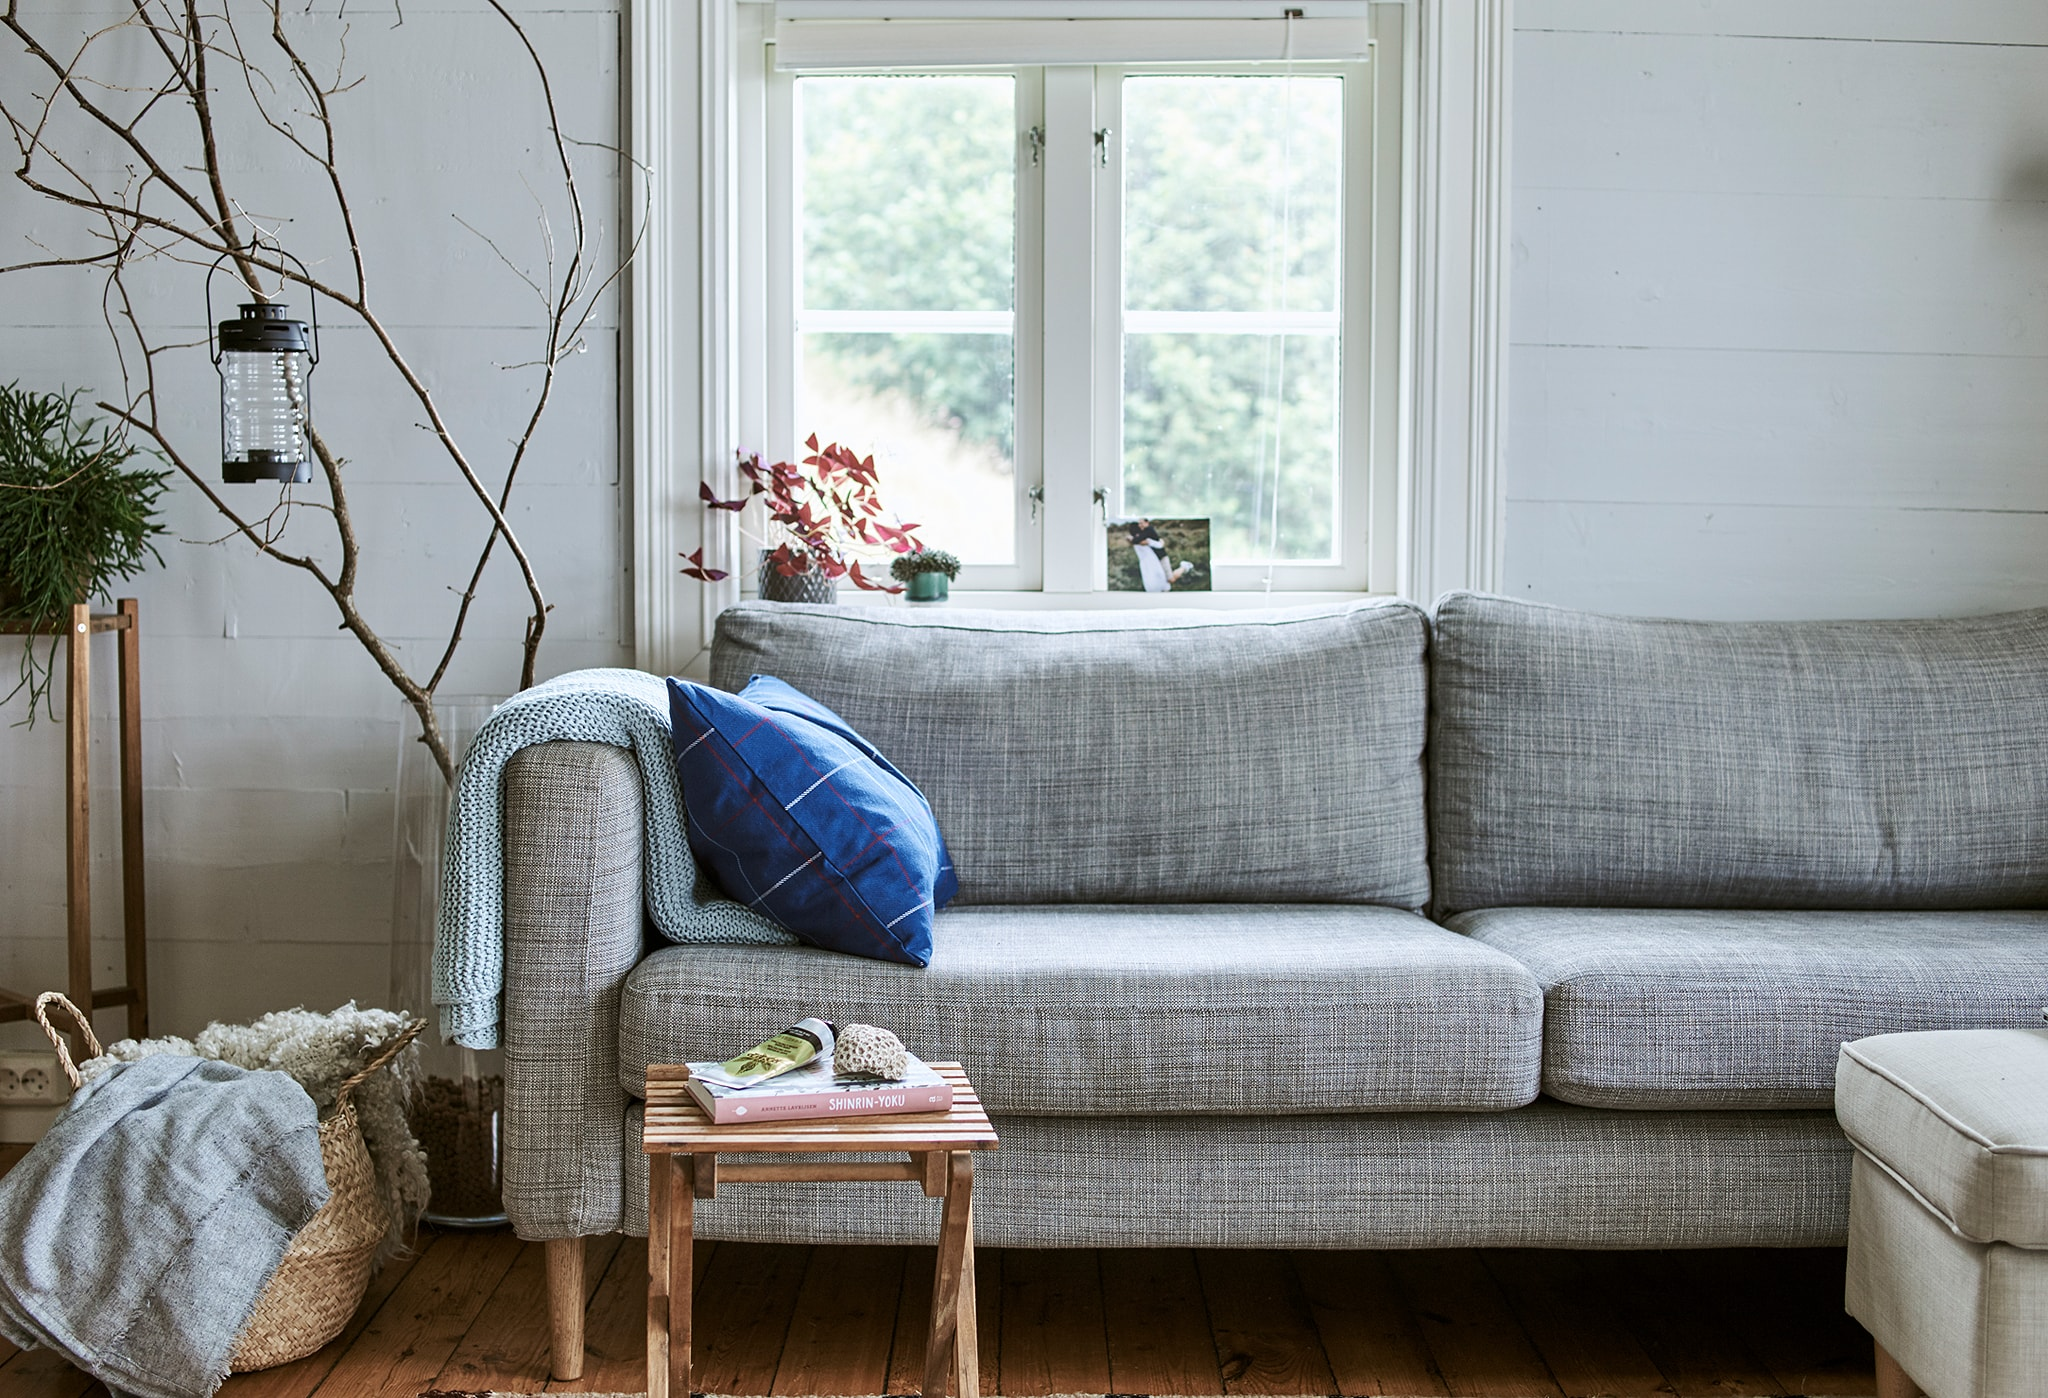 A grey sofa in front of a window, woolly throws stored in a basket beside it and tree branches displayed in a big glass vase.